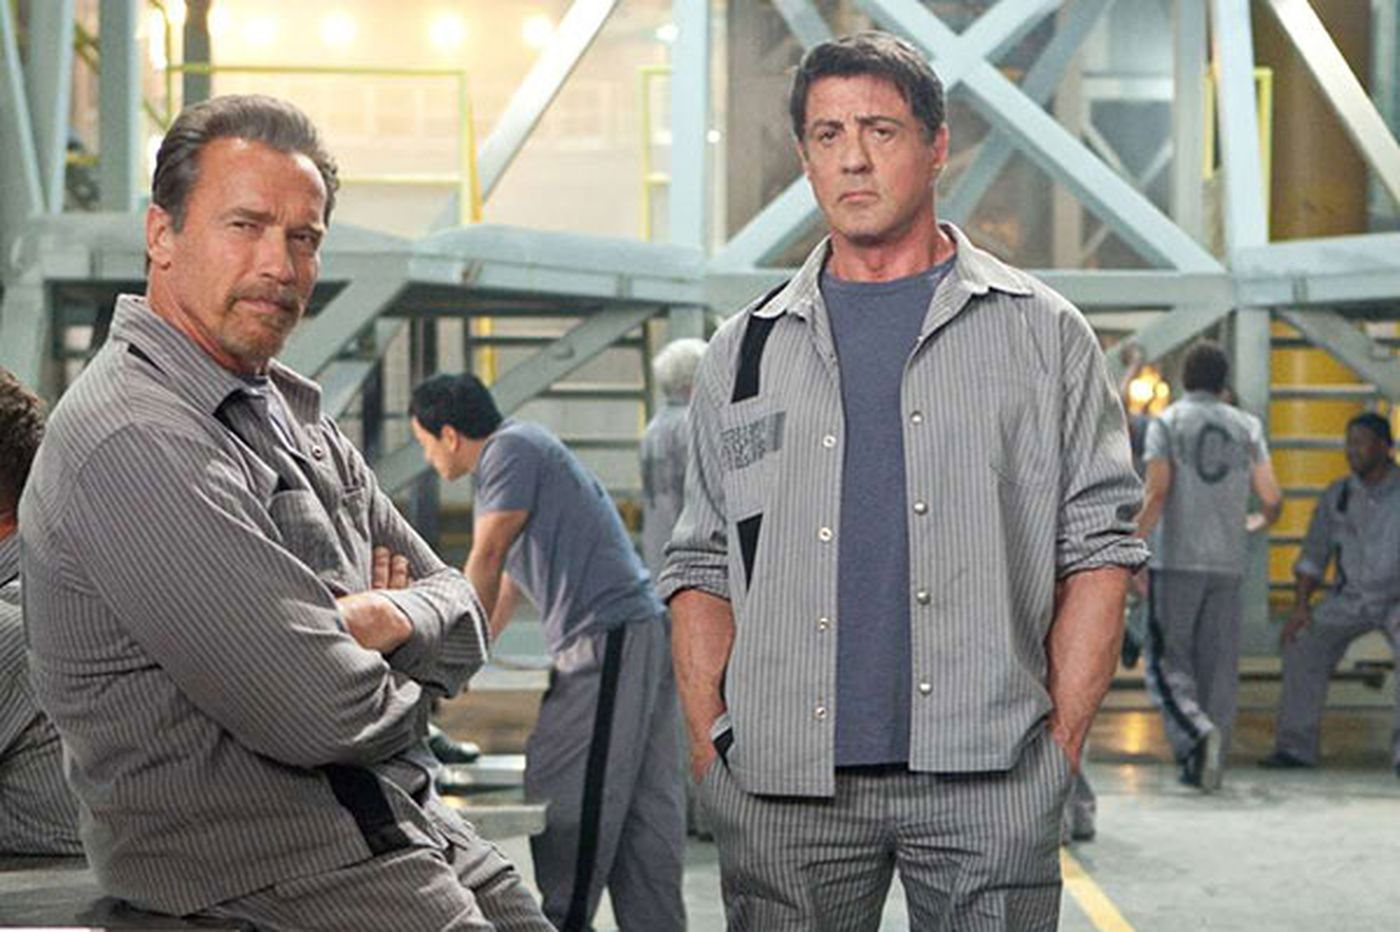 'Escape Plan': Predictable but enjoyable buddy flick